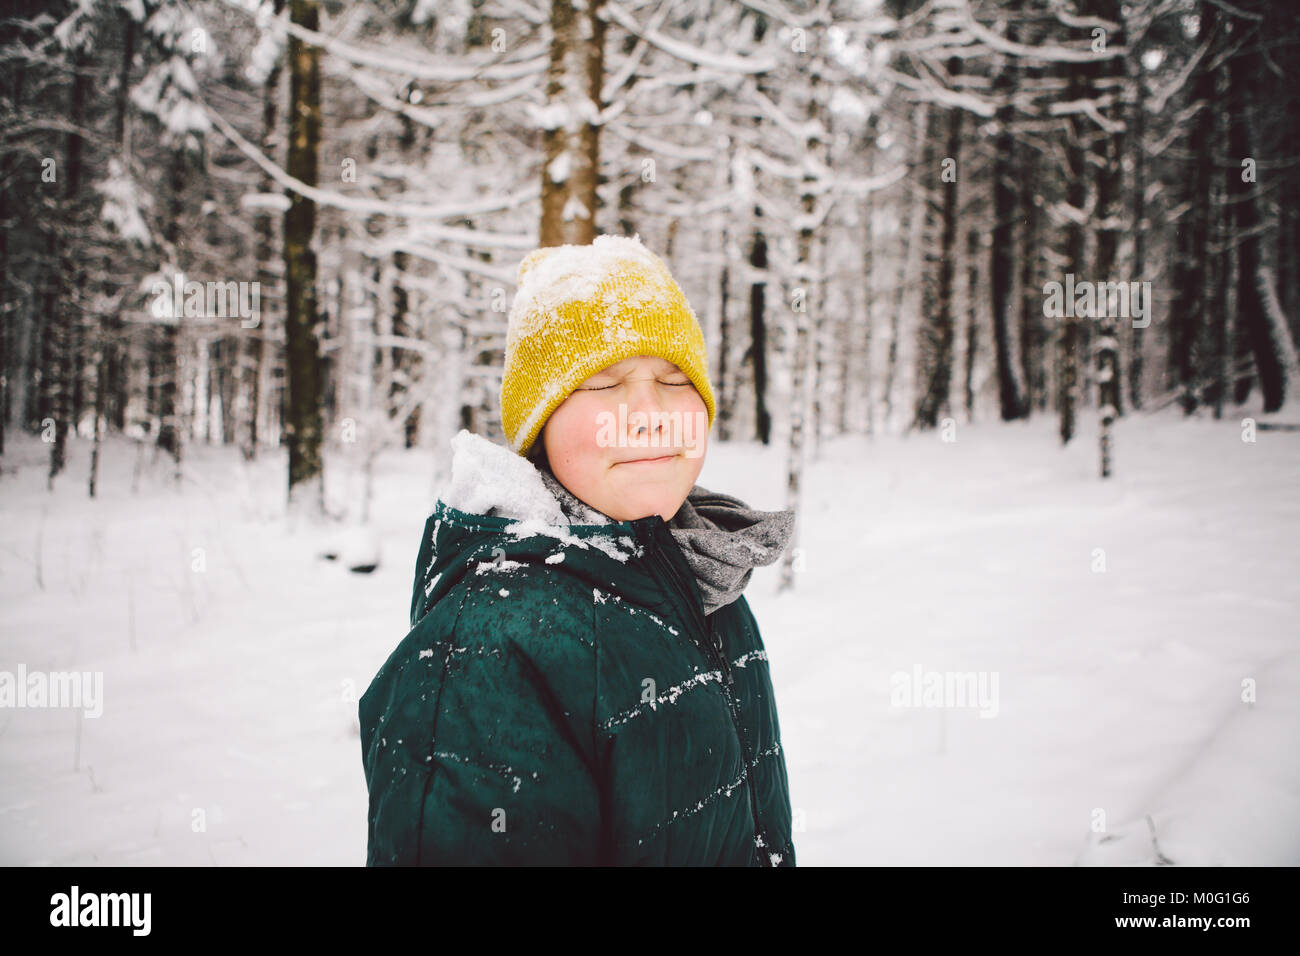 A teenage boy in winter clothes is standing and posing in snowy winter forest. - Stock Image